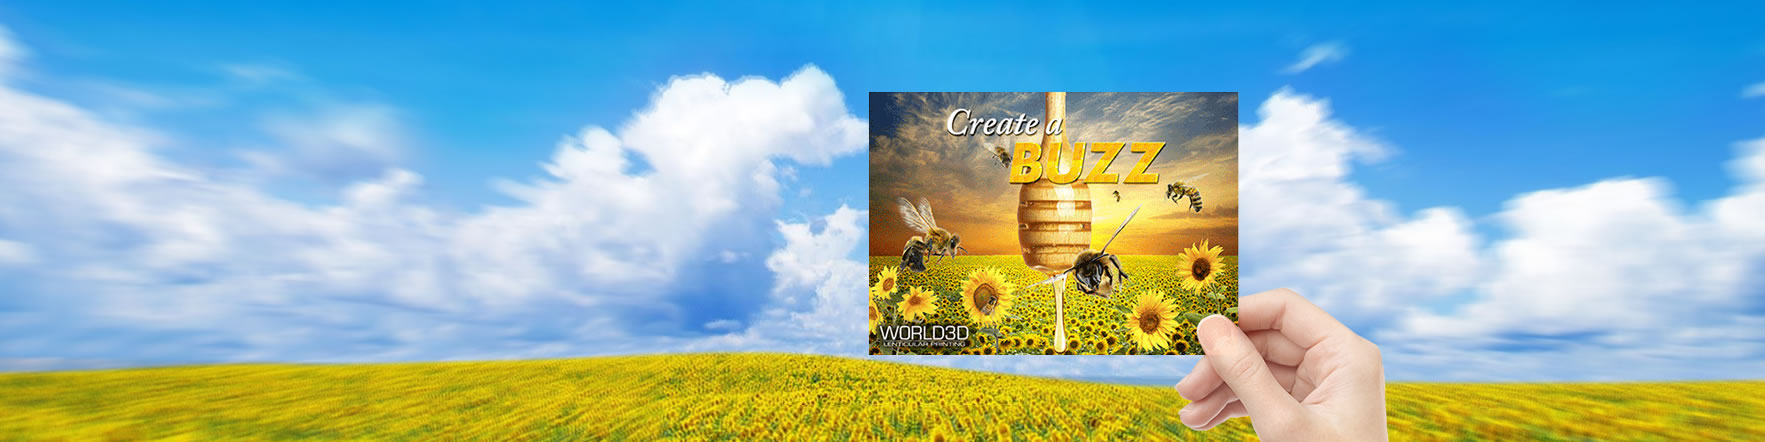 Create a Buzz - Lenticular Printing on Background